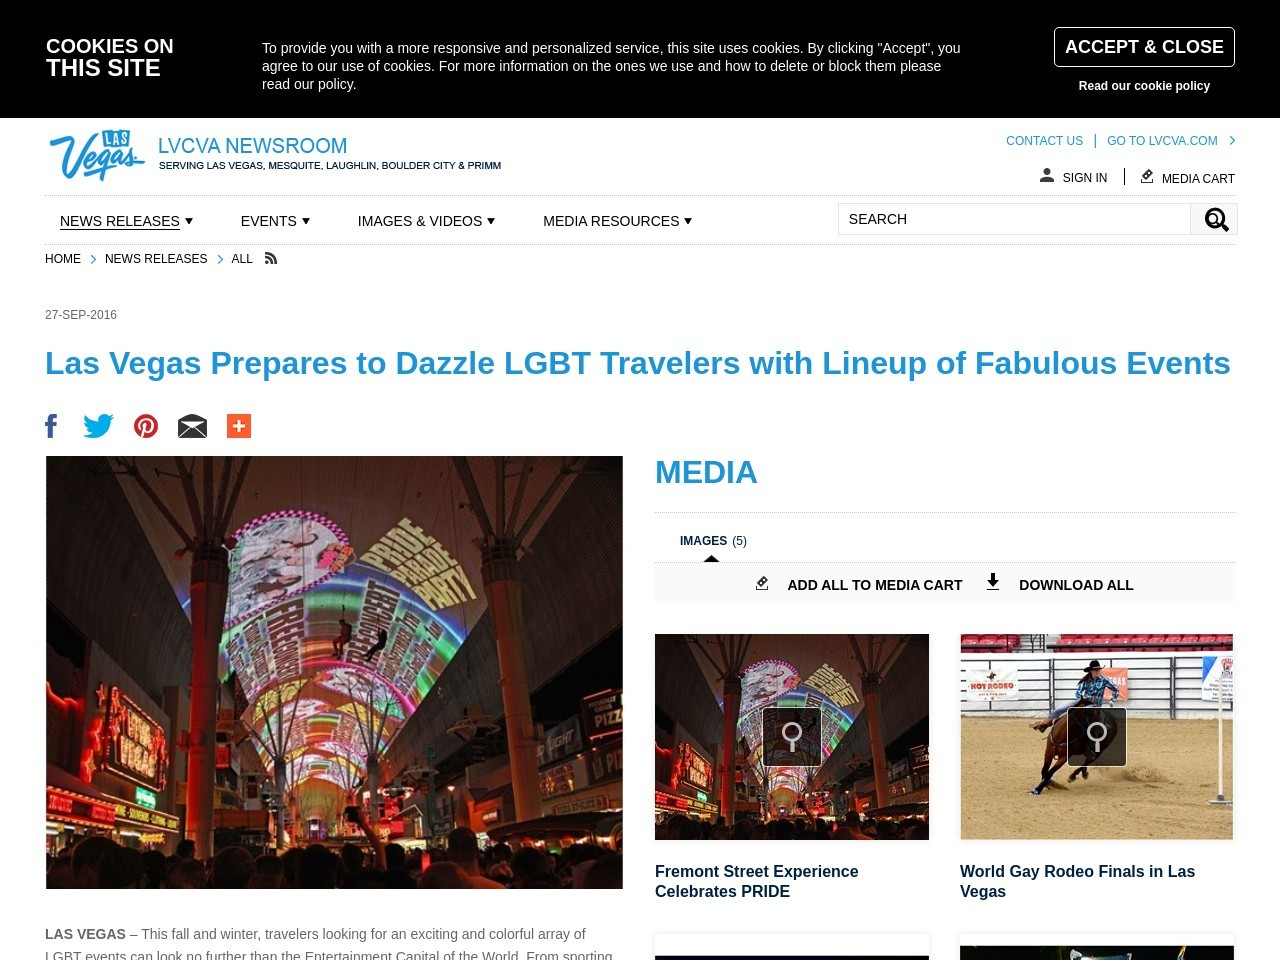 Las Vegas Prepares to Dazzle LGBT Travelers with Lineup of Fabulous Events